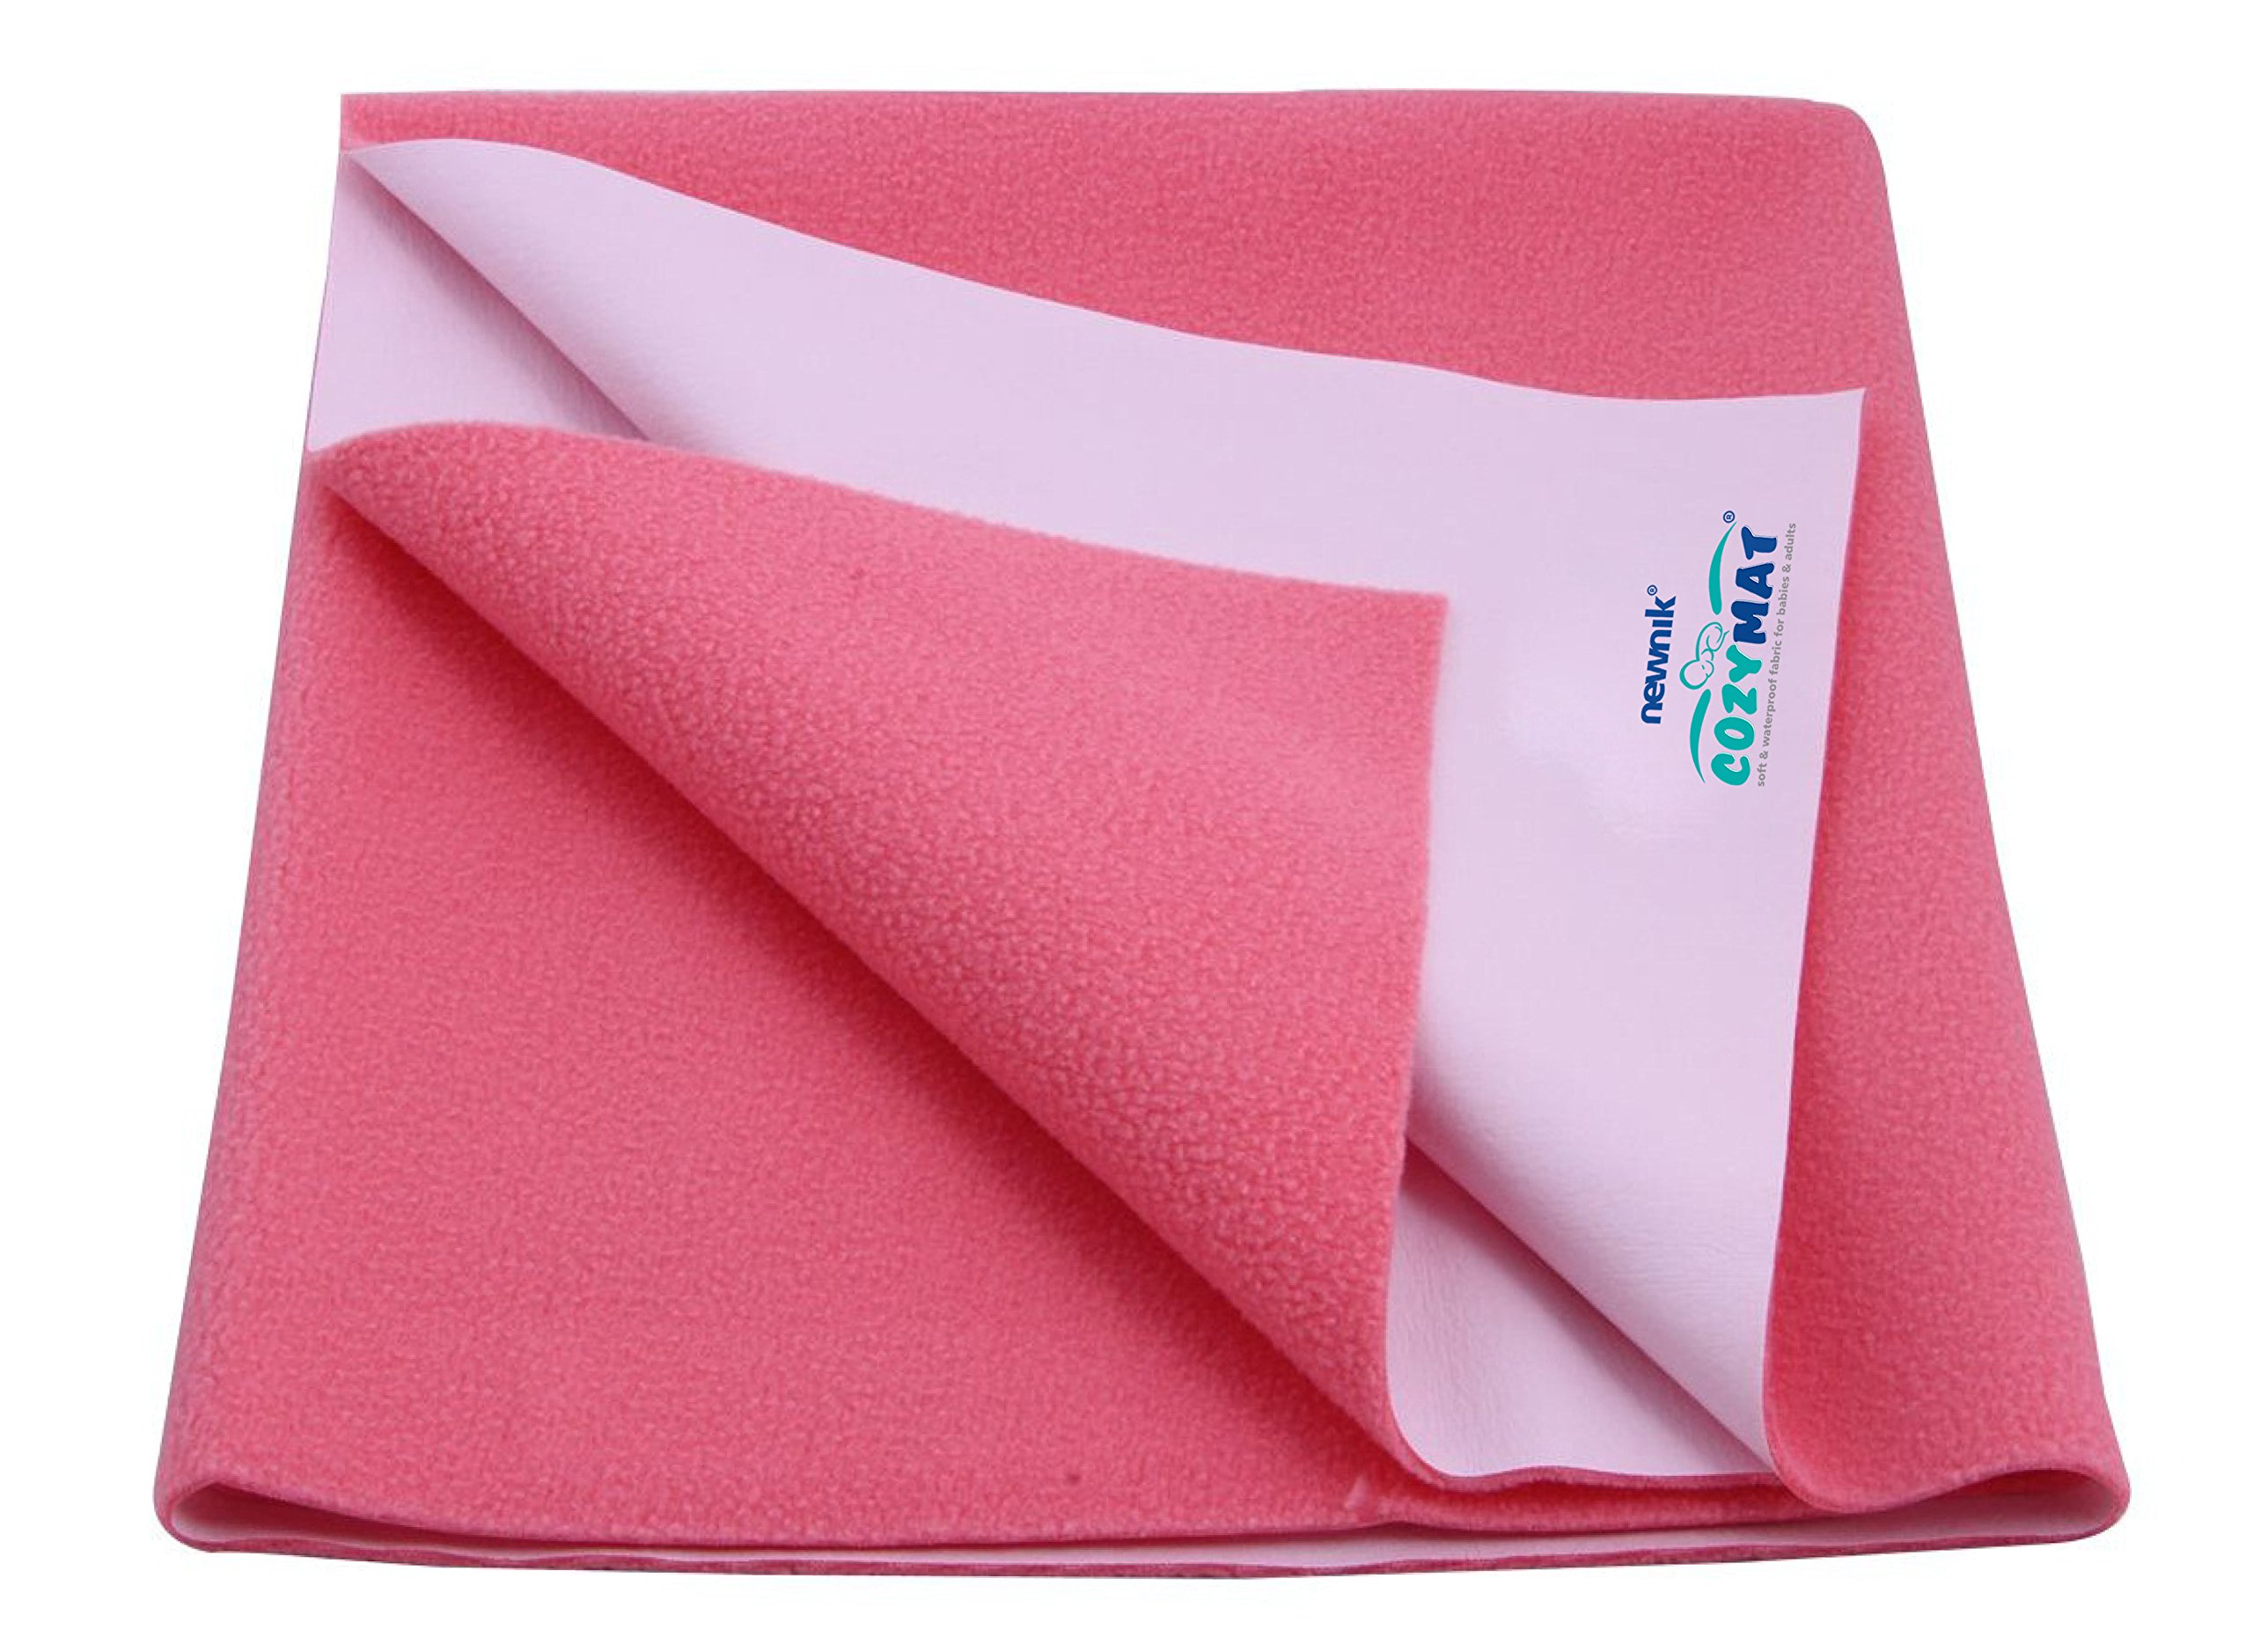 Cozymat Dry Sheet Waterproof Breathable Bed Protector (Size: 140cm X 100cm) Salmon Rose, Large by cozymat